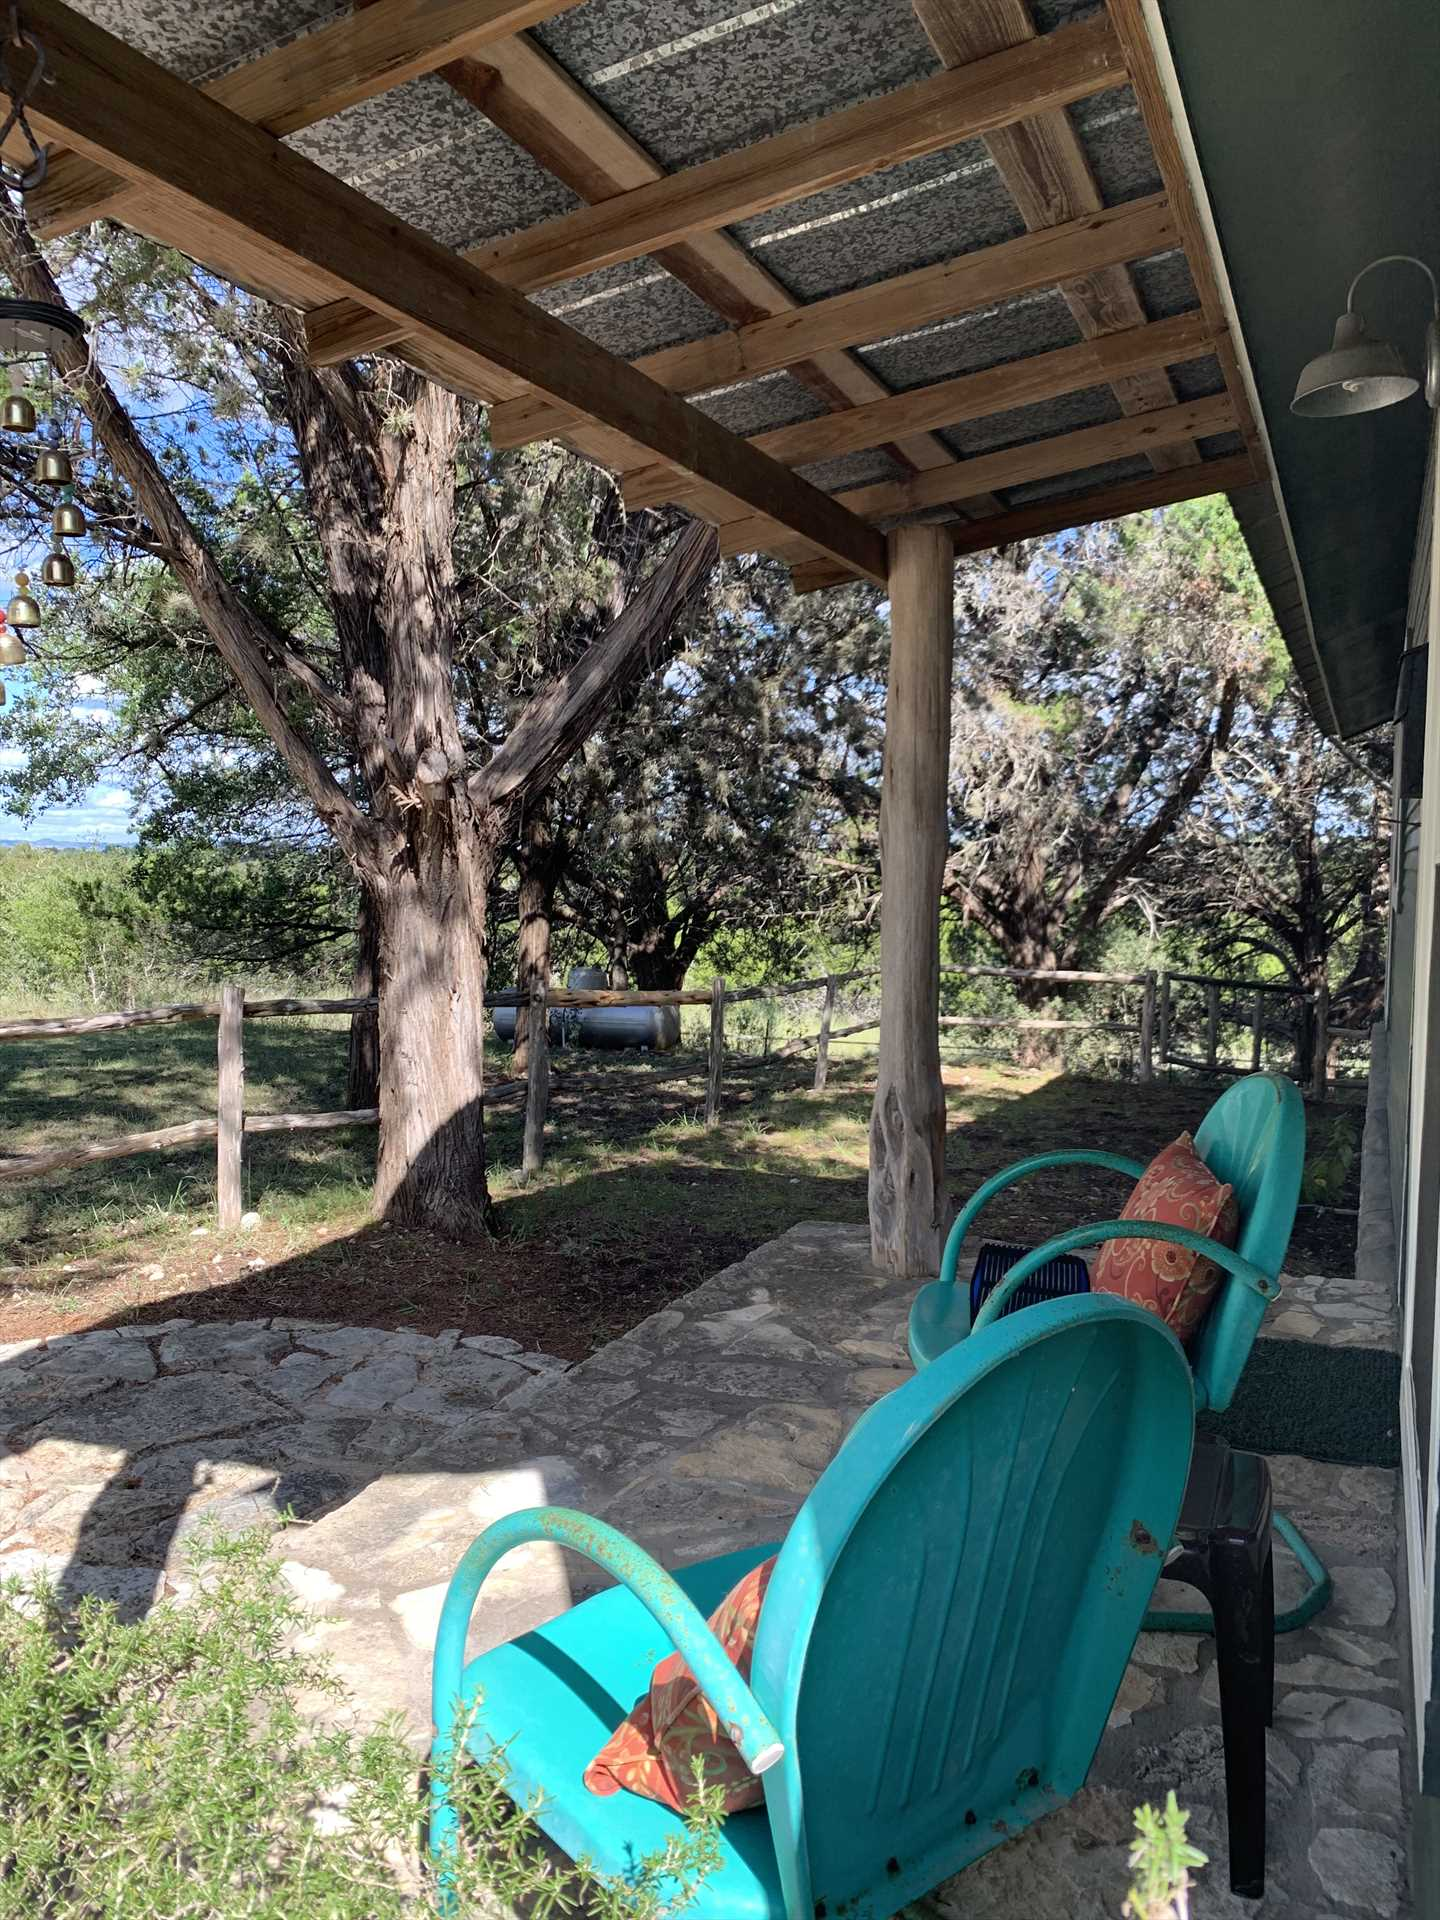 Savor a quiet moment on the shaded porch that overlooks the tree-lined property.